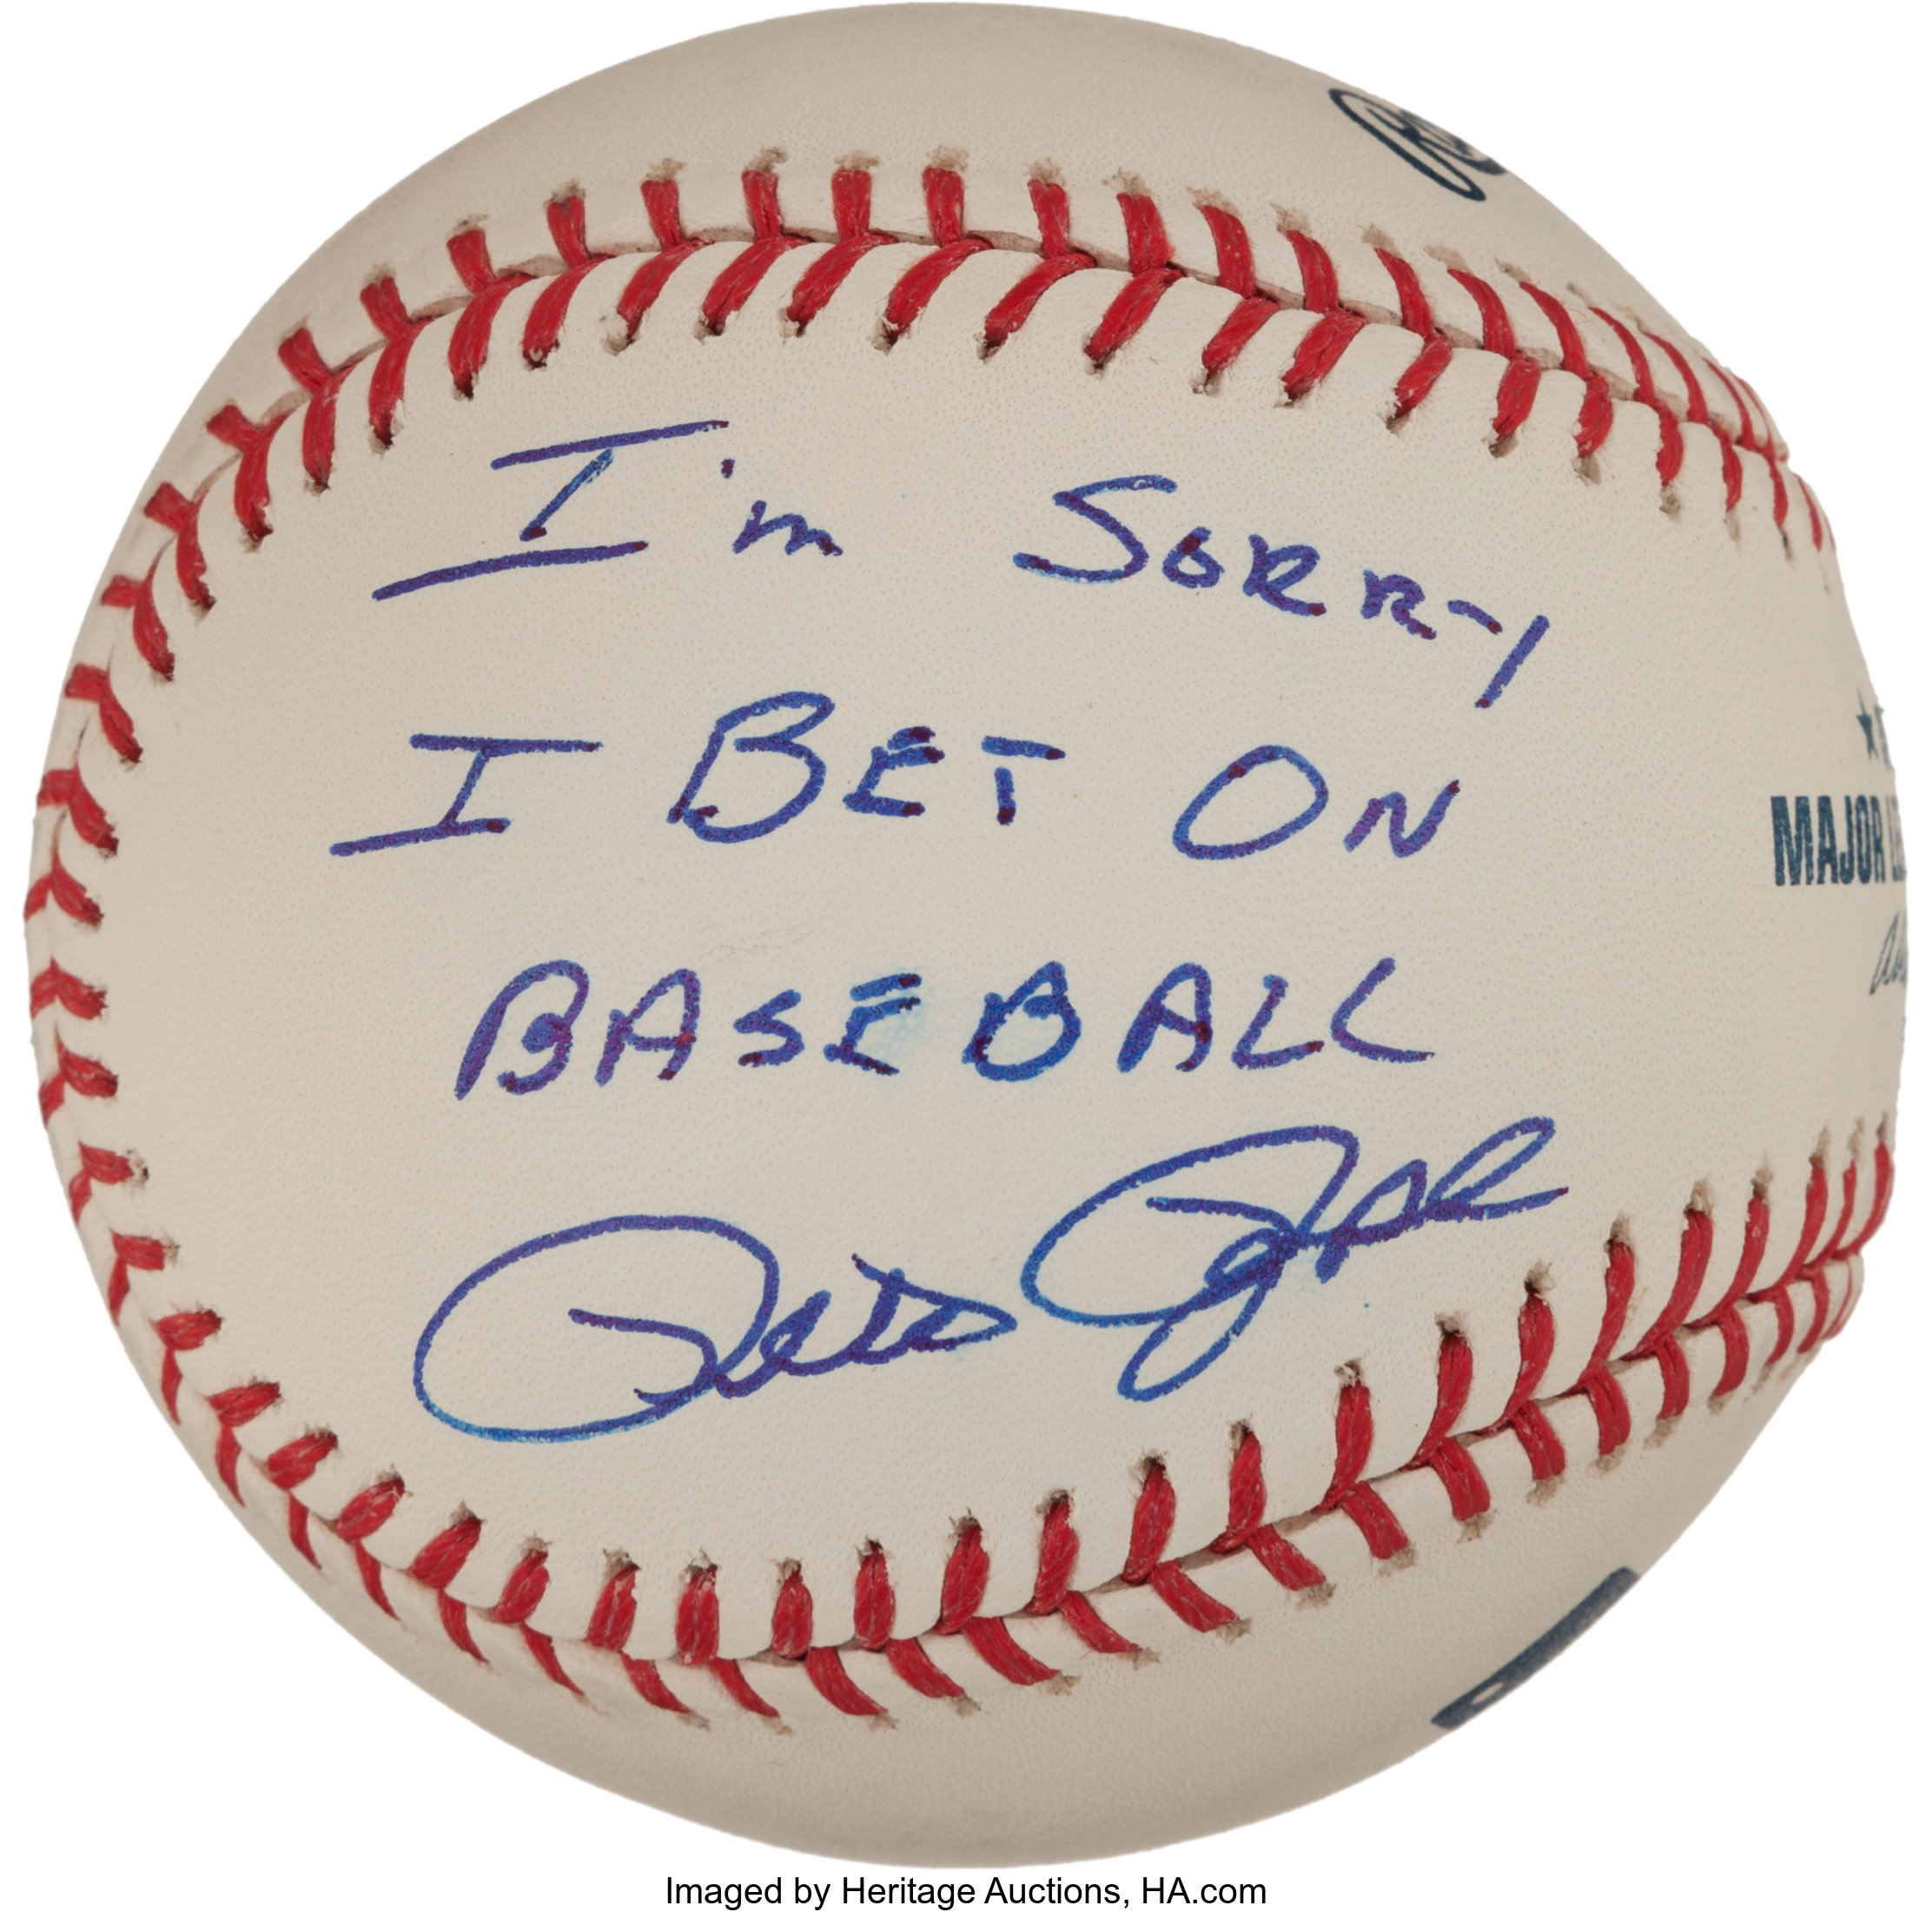 Pete rose i sorry i bet on baseball autograph sports betting forum service plays book